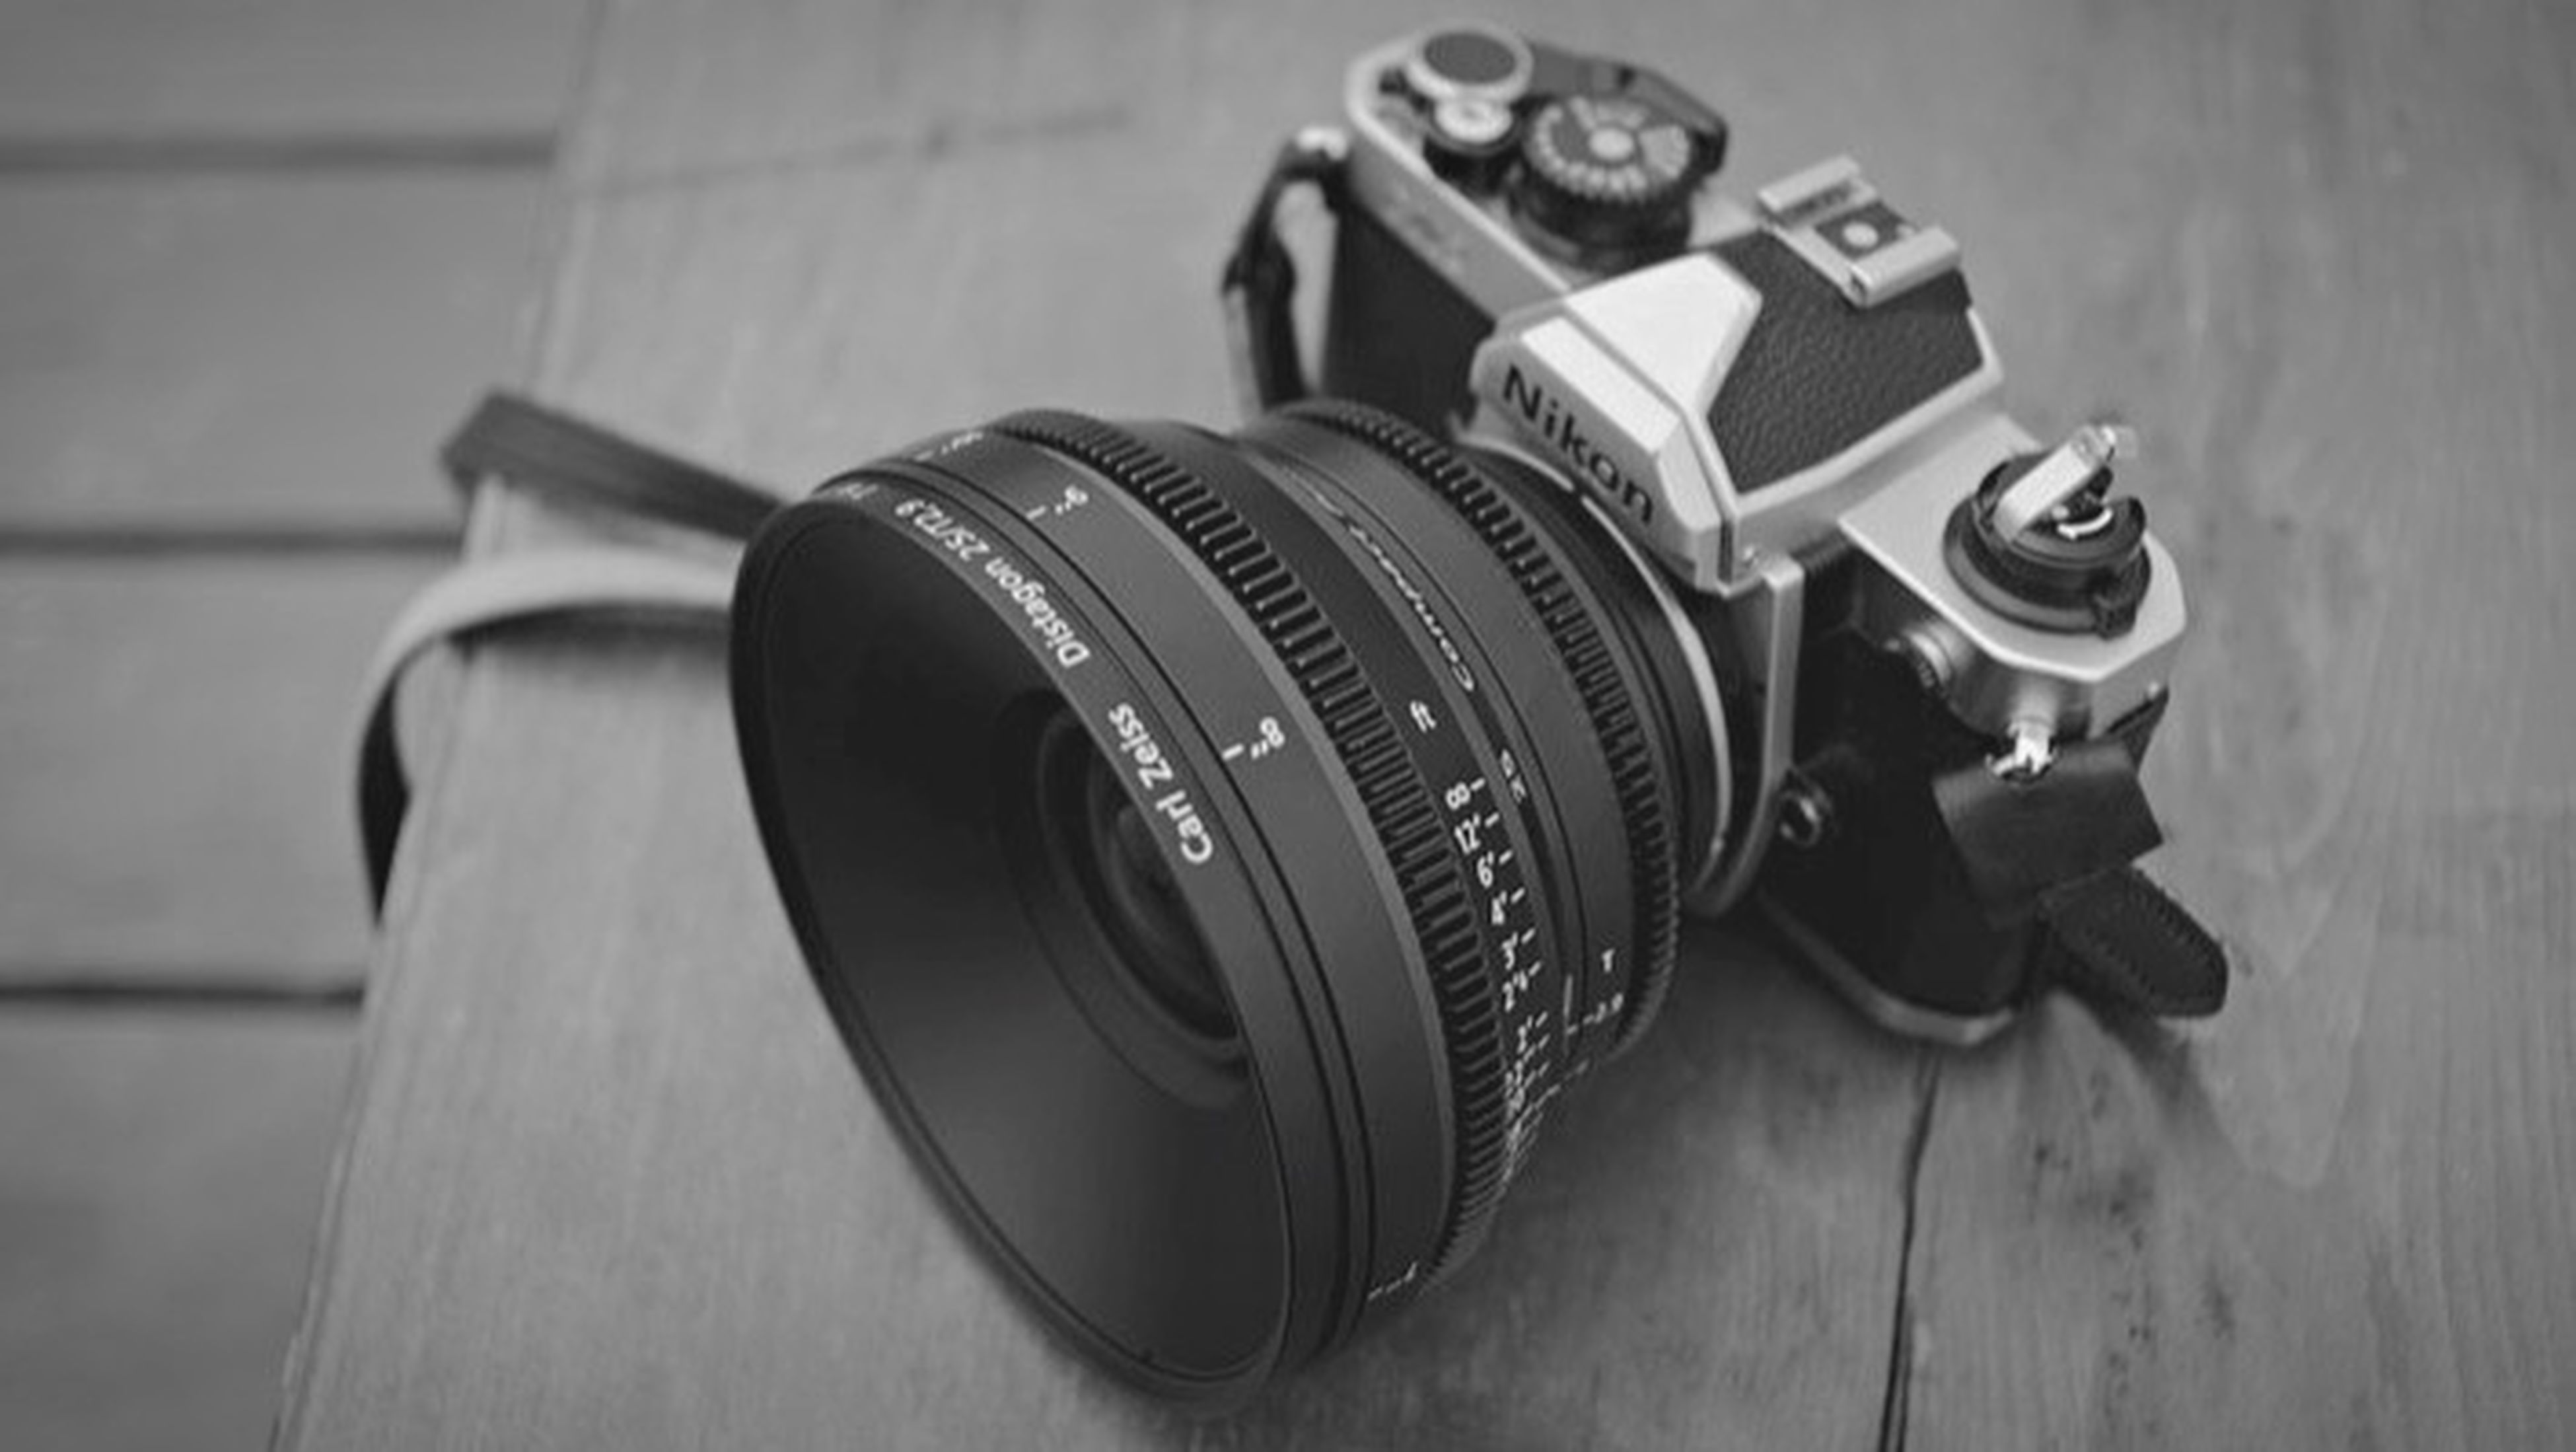 close-up, technology, indoors, still life, old-fashioned, focus on foreground, photography themes, selective focus, retro styled, wood - material, camera - photographic equipment, table, equipment, high angle view, metal, no people, day, single object, sunglasses, old